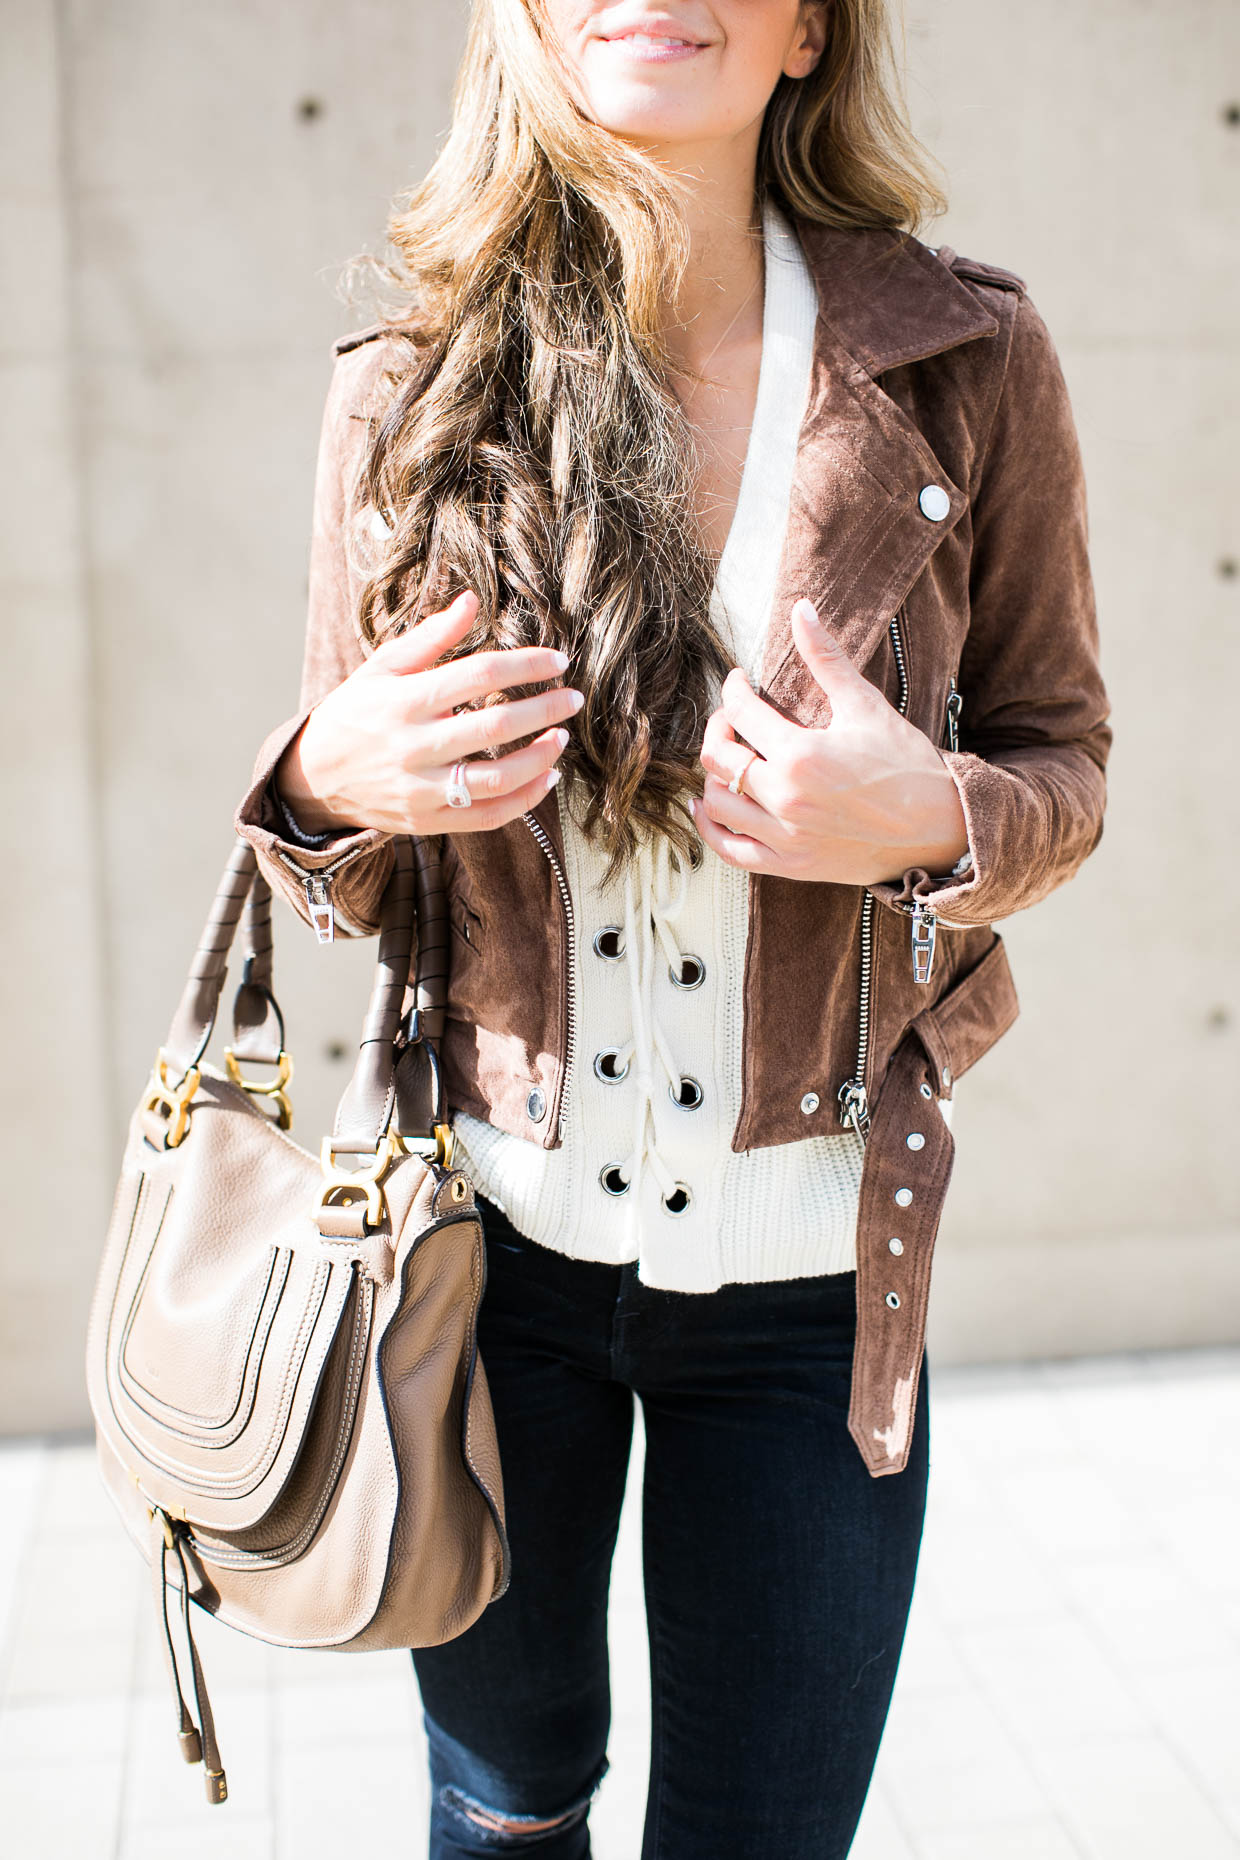 Fashion blogger The Darling Detail wears Lush Lace-Up Sweater, BLANKNYC Morning Suede Moto Jacket, FRAME 'Le High Skinny', High Rise Crop Jeans (Sterling), Larsson & Jennings 'Lugano' Mesh Strap Watch, Petite Albion Ring with Morganite and Diamonds, and Chloé 'Medium Marcie' Leather Satchel